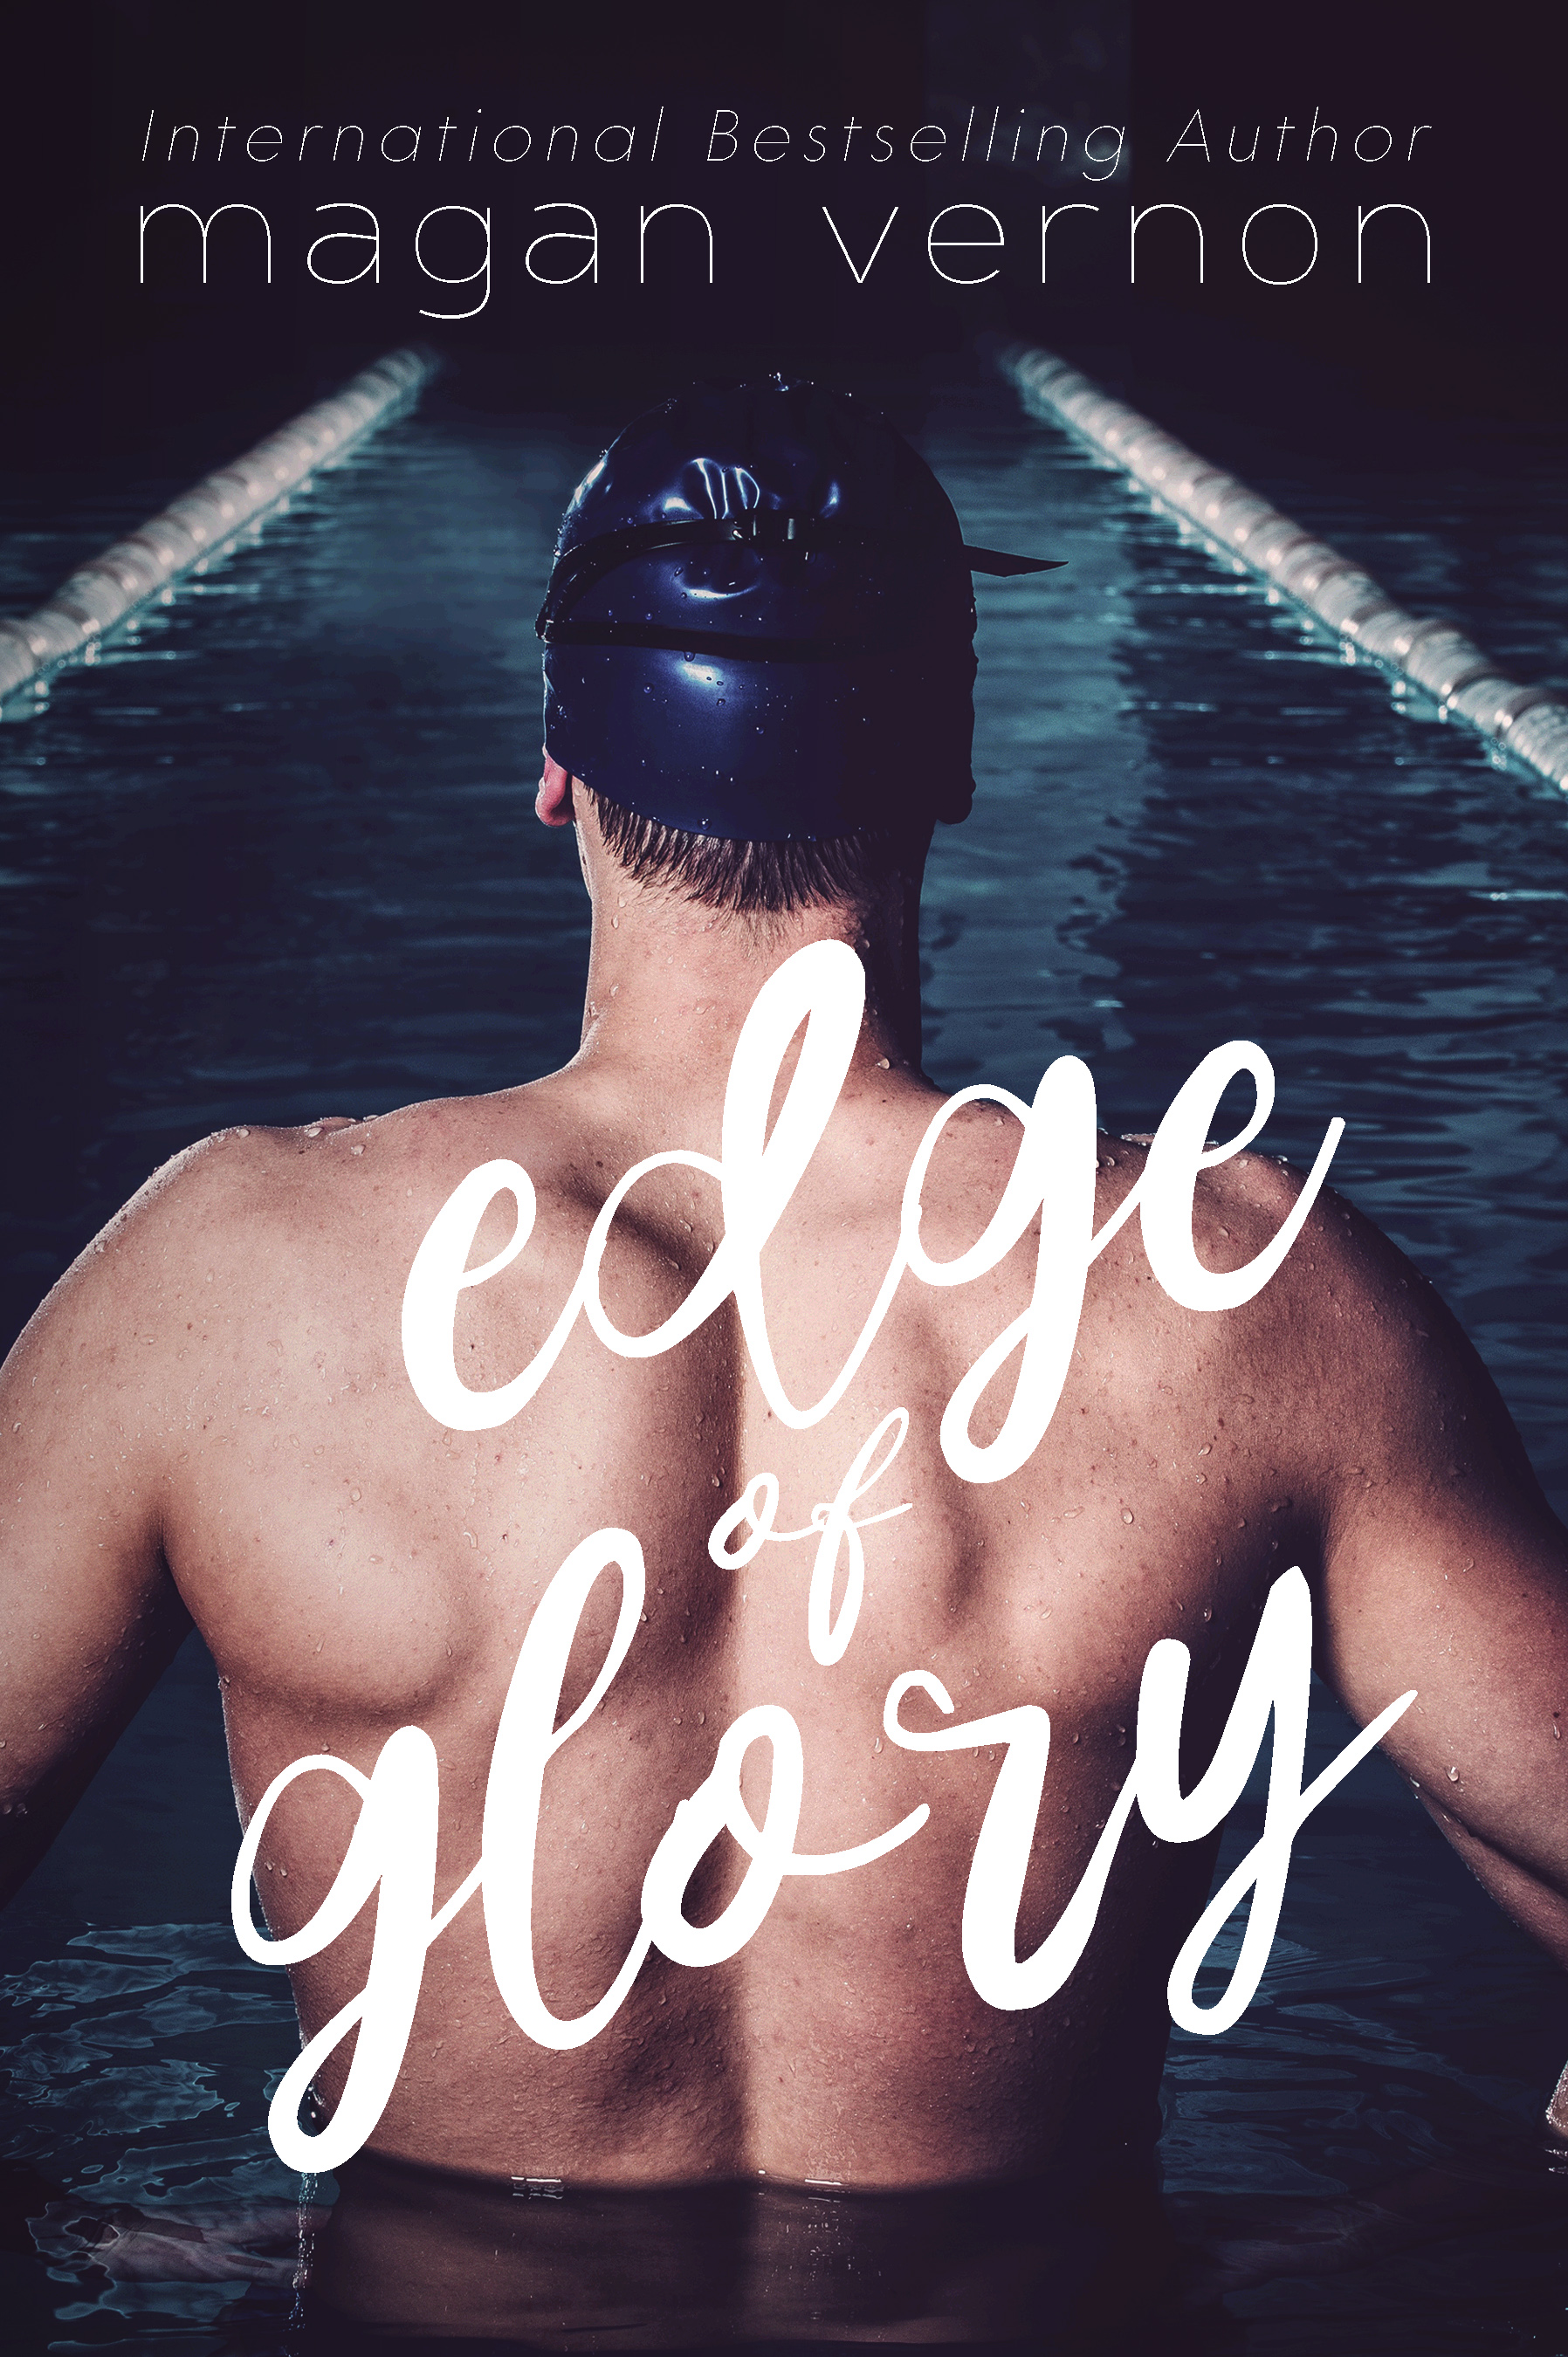 Edge of Glory Cover Reveal!